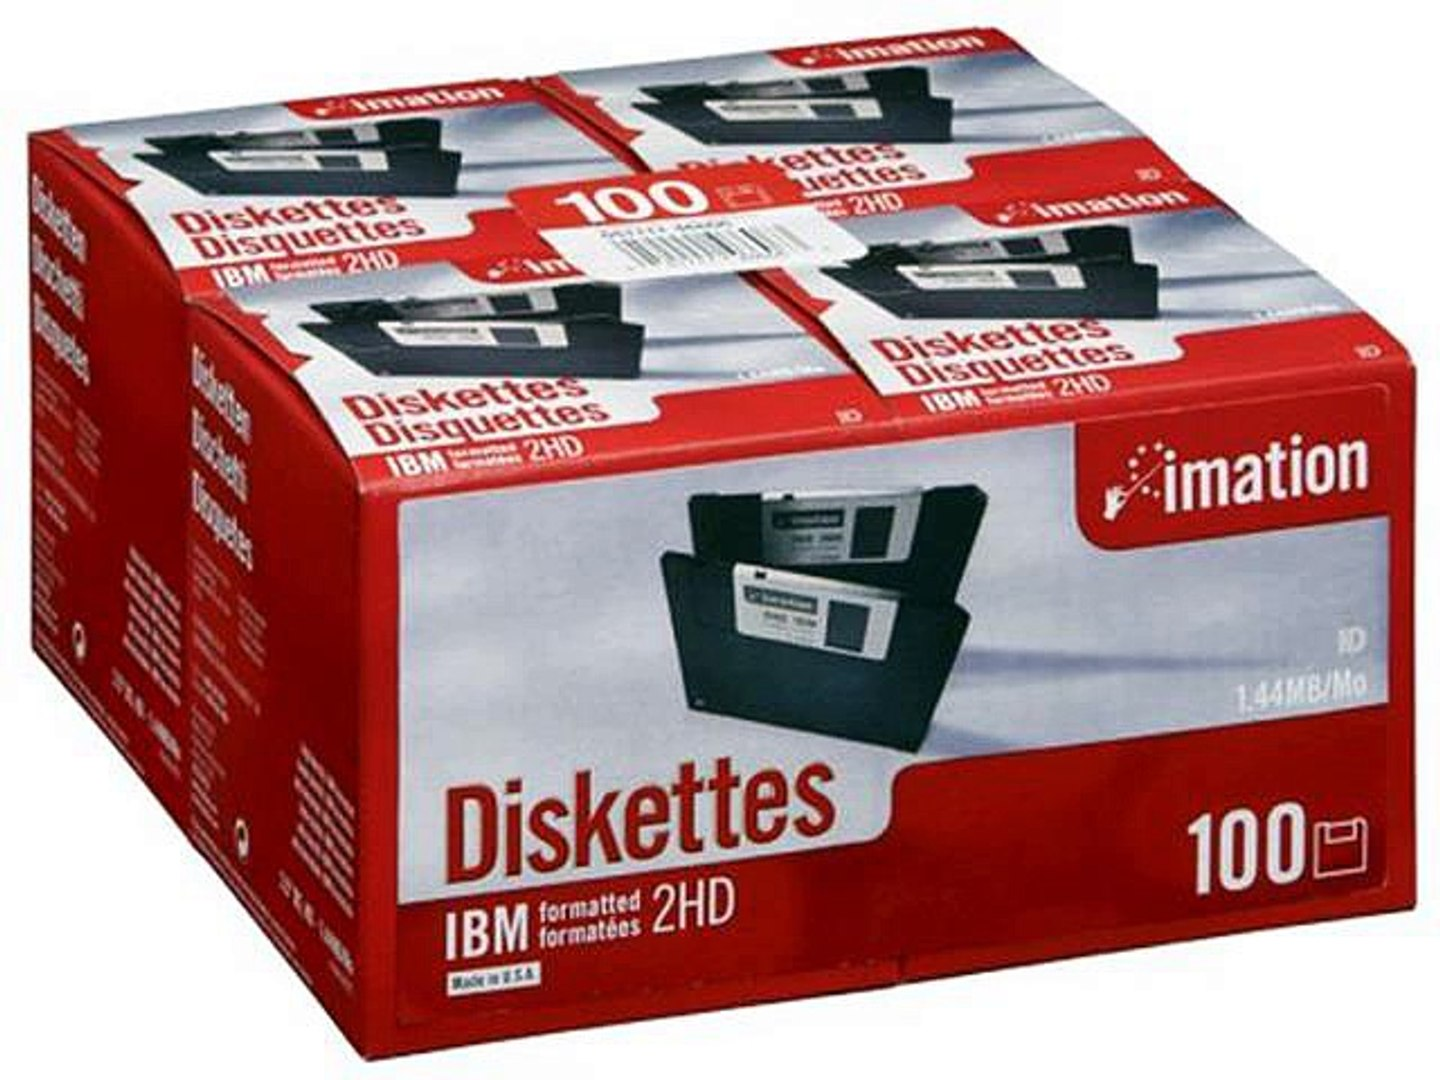 Kao MF2HD 3.5 High Density Floppy Diskettes 2mb Pack of 10